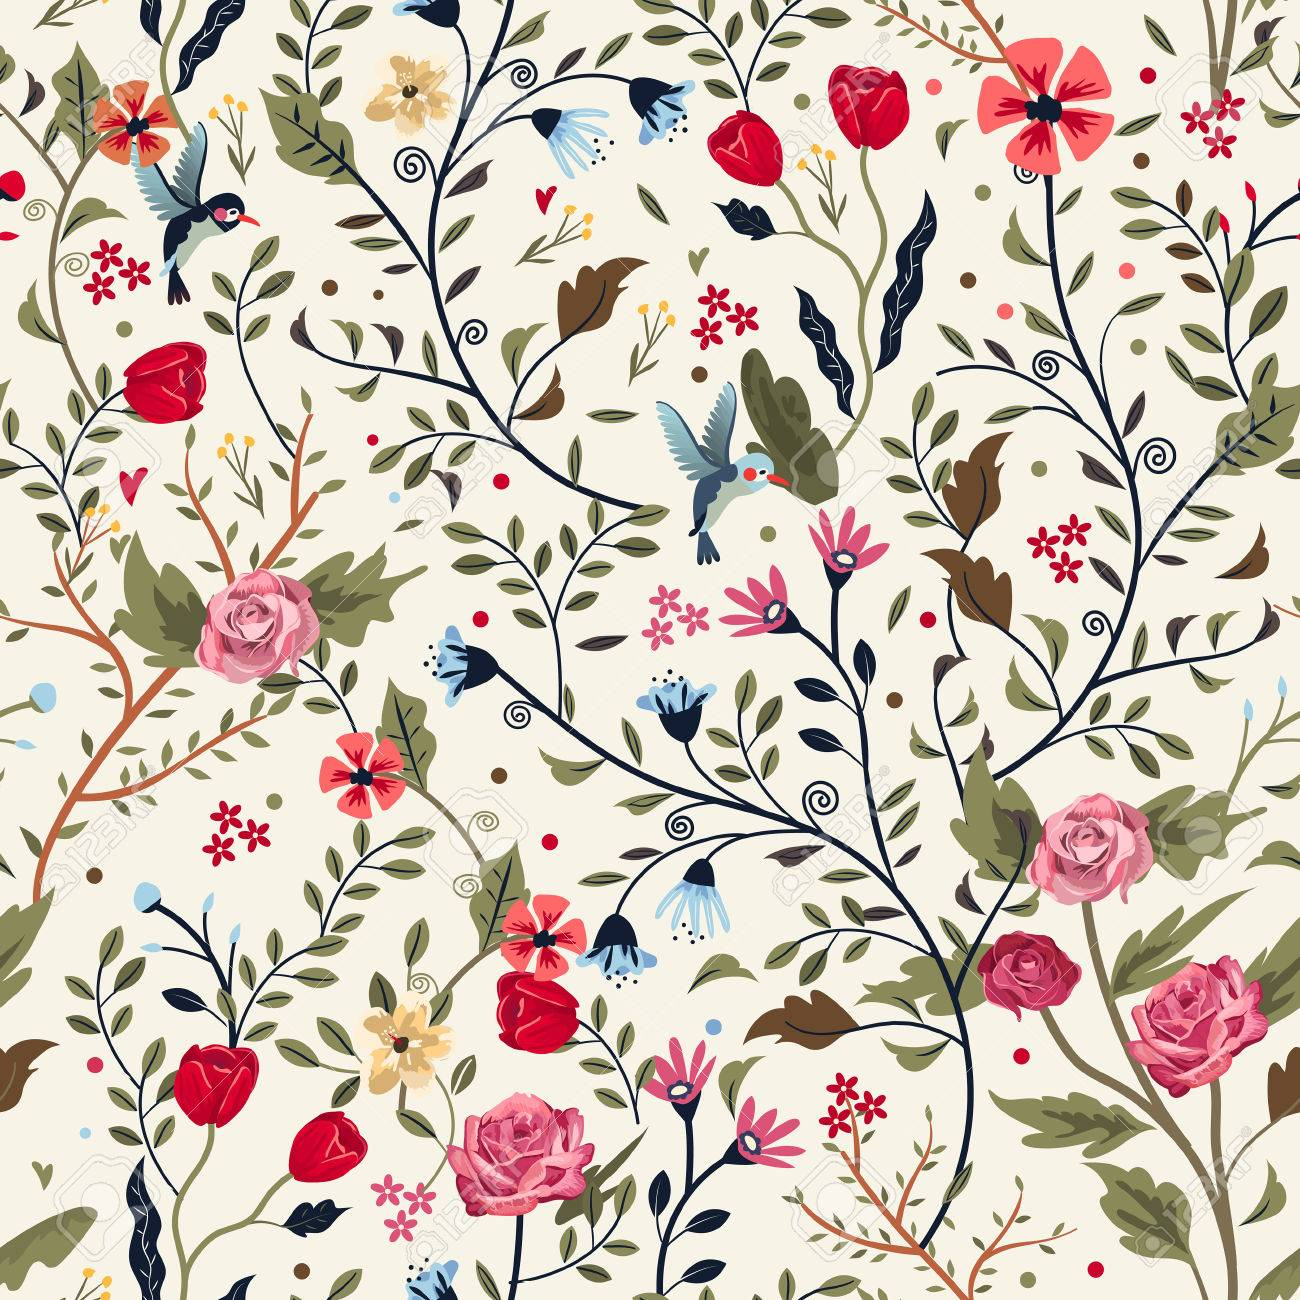 Colorful Adorable Seamless Floral Pattern Over Beige Background